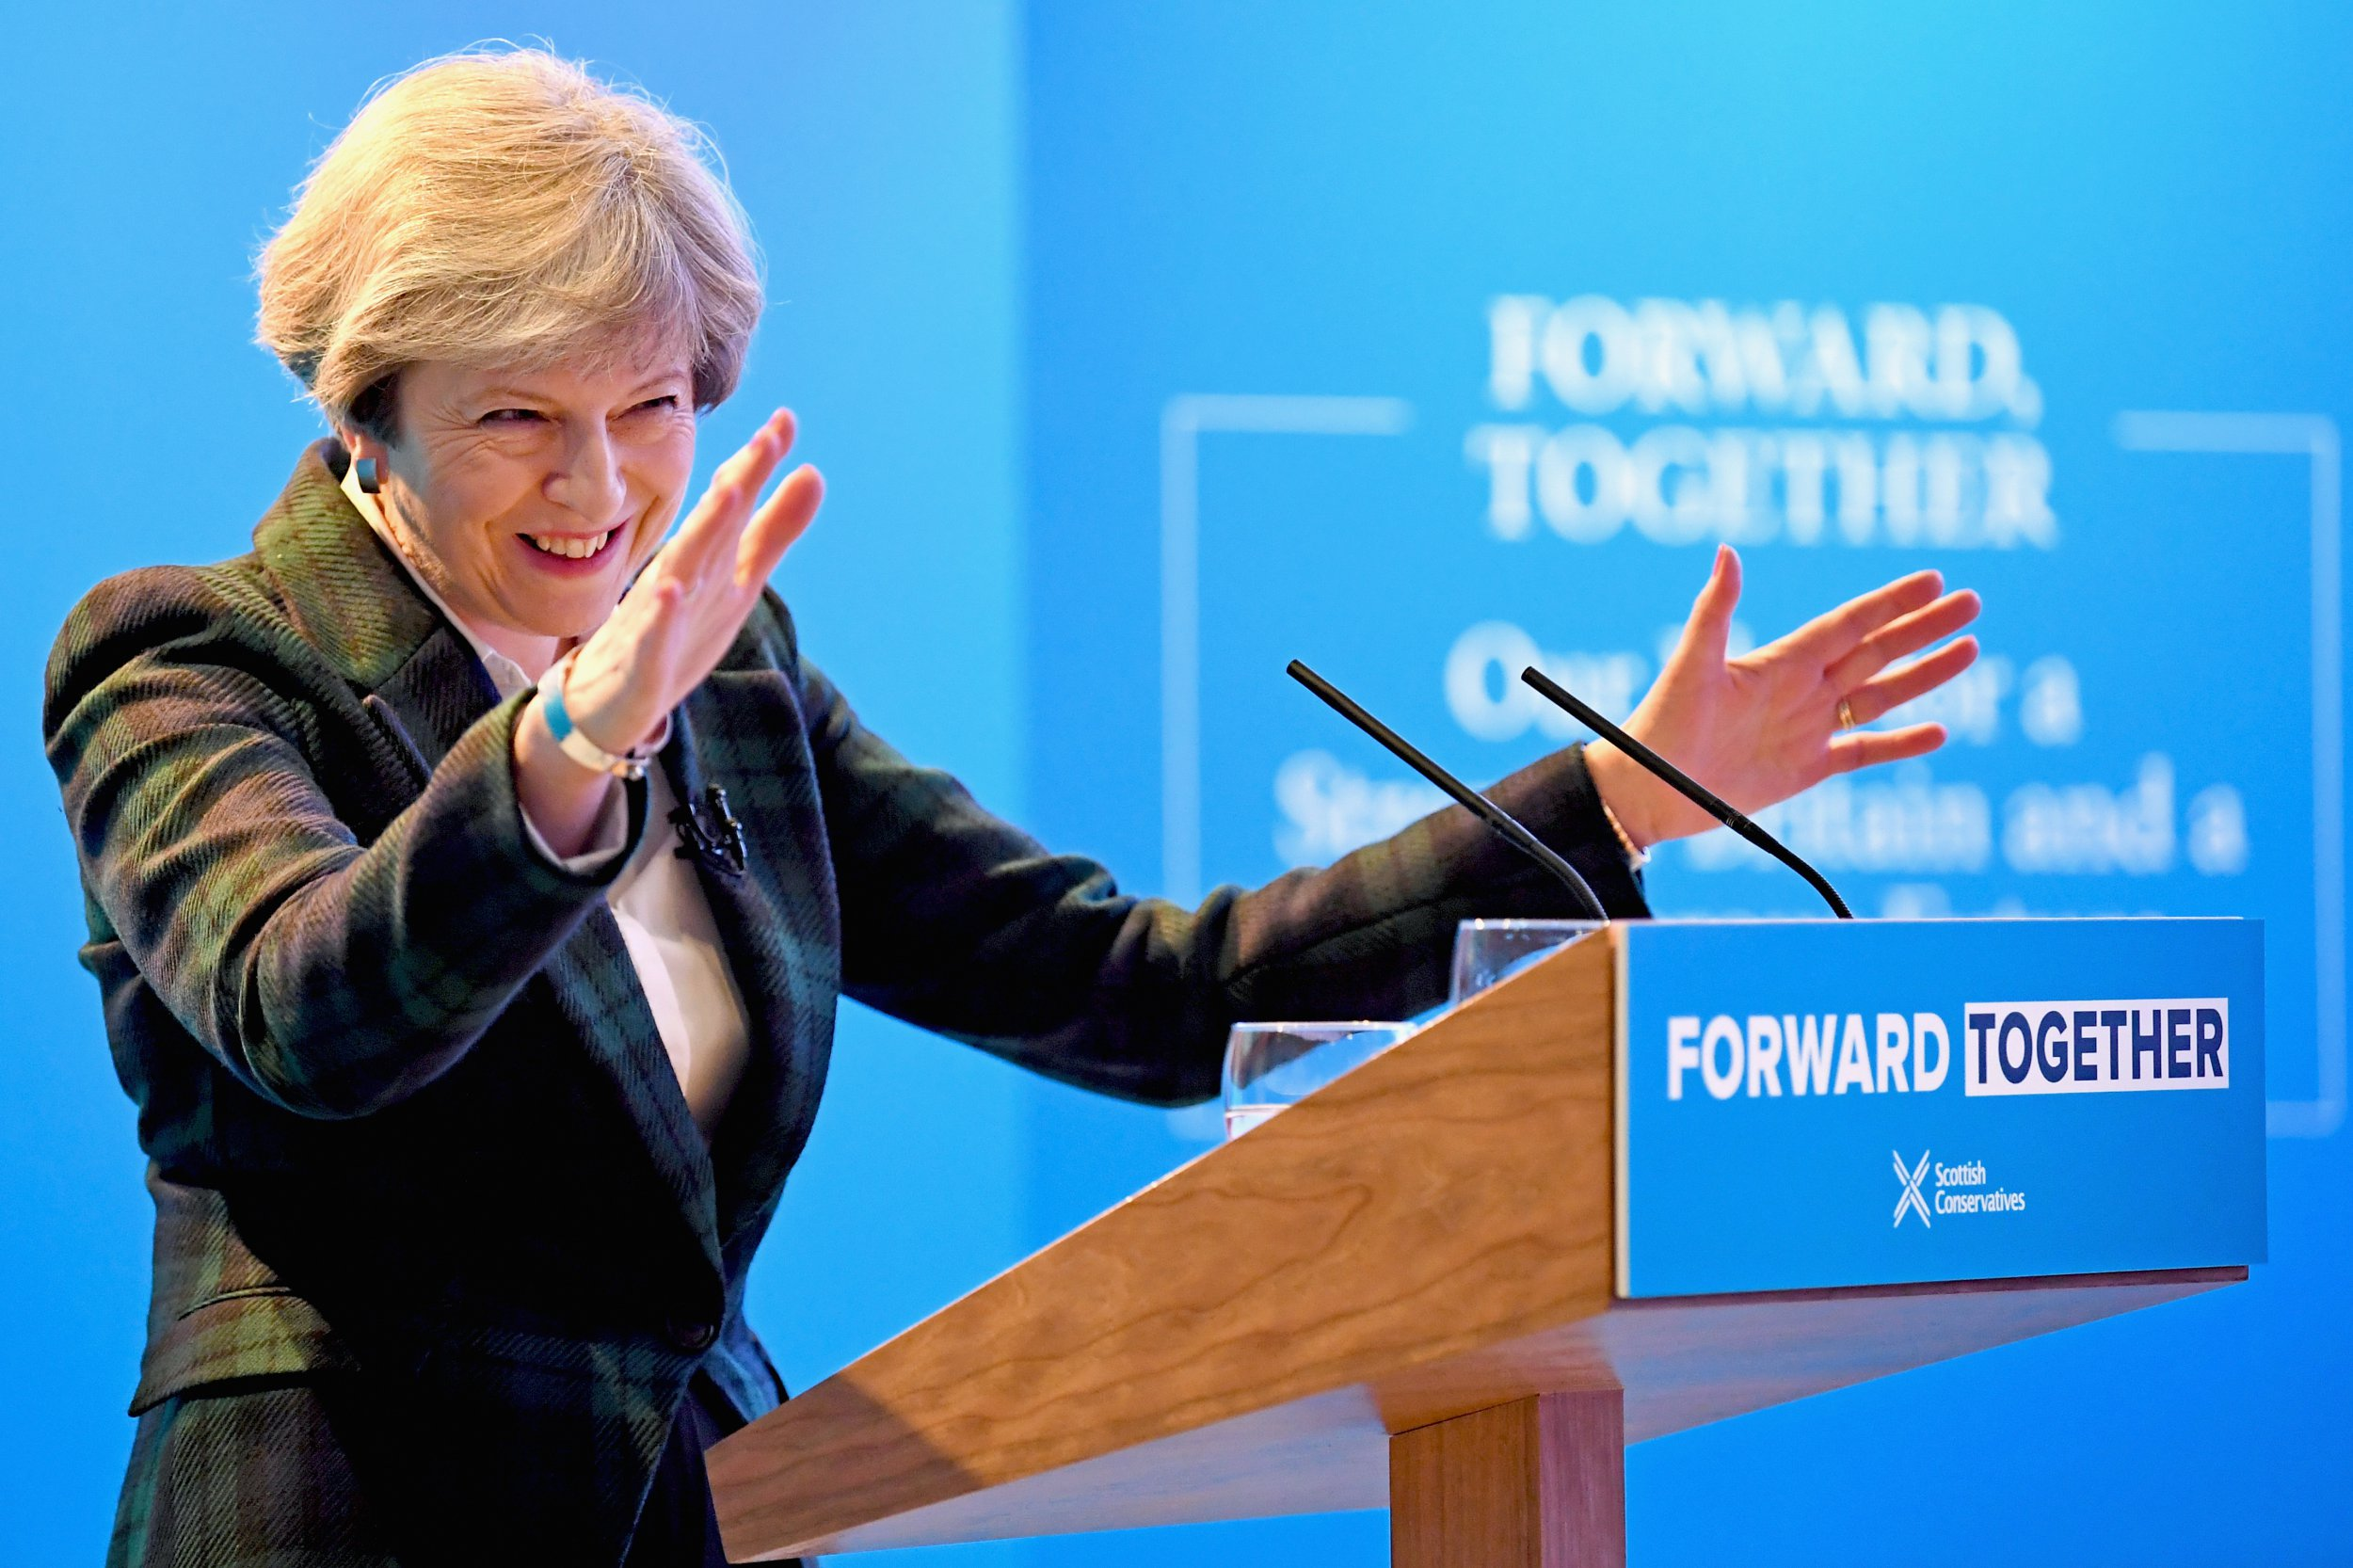 Liar Liar, the song about Theresa May, is now on course to top the chart – could this be the first time a no 1 doesn't get played?